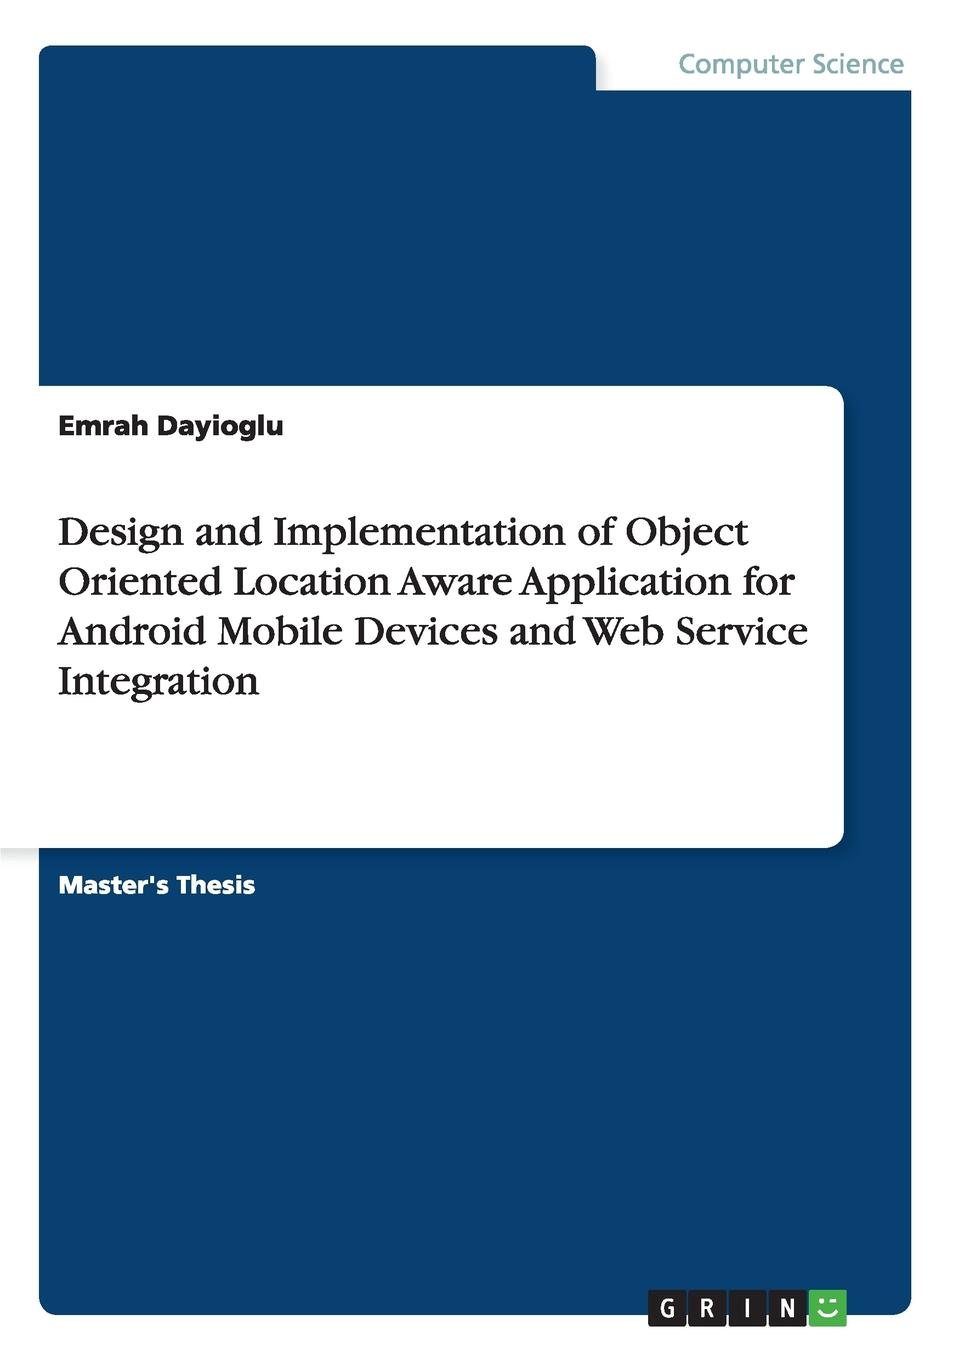 Emrah Dayioglu Design and Implementation of Object Oriented Location Aware Application for Android Mobile Devices and Web Service Integration verma dinesh c techniques for surviving mobile data explosion